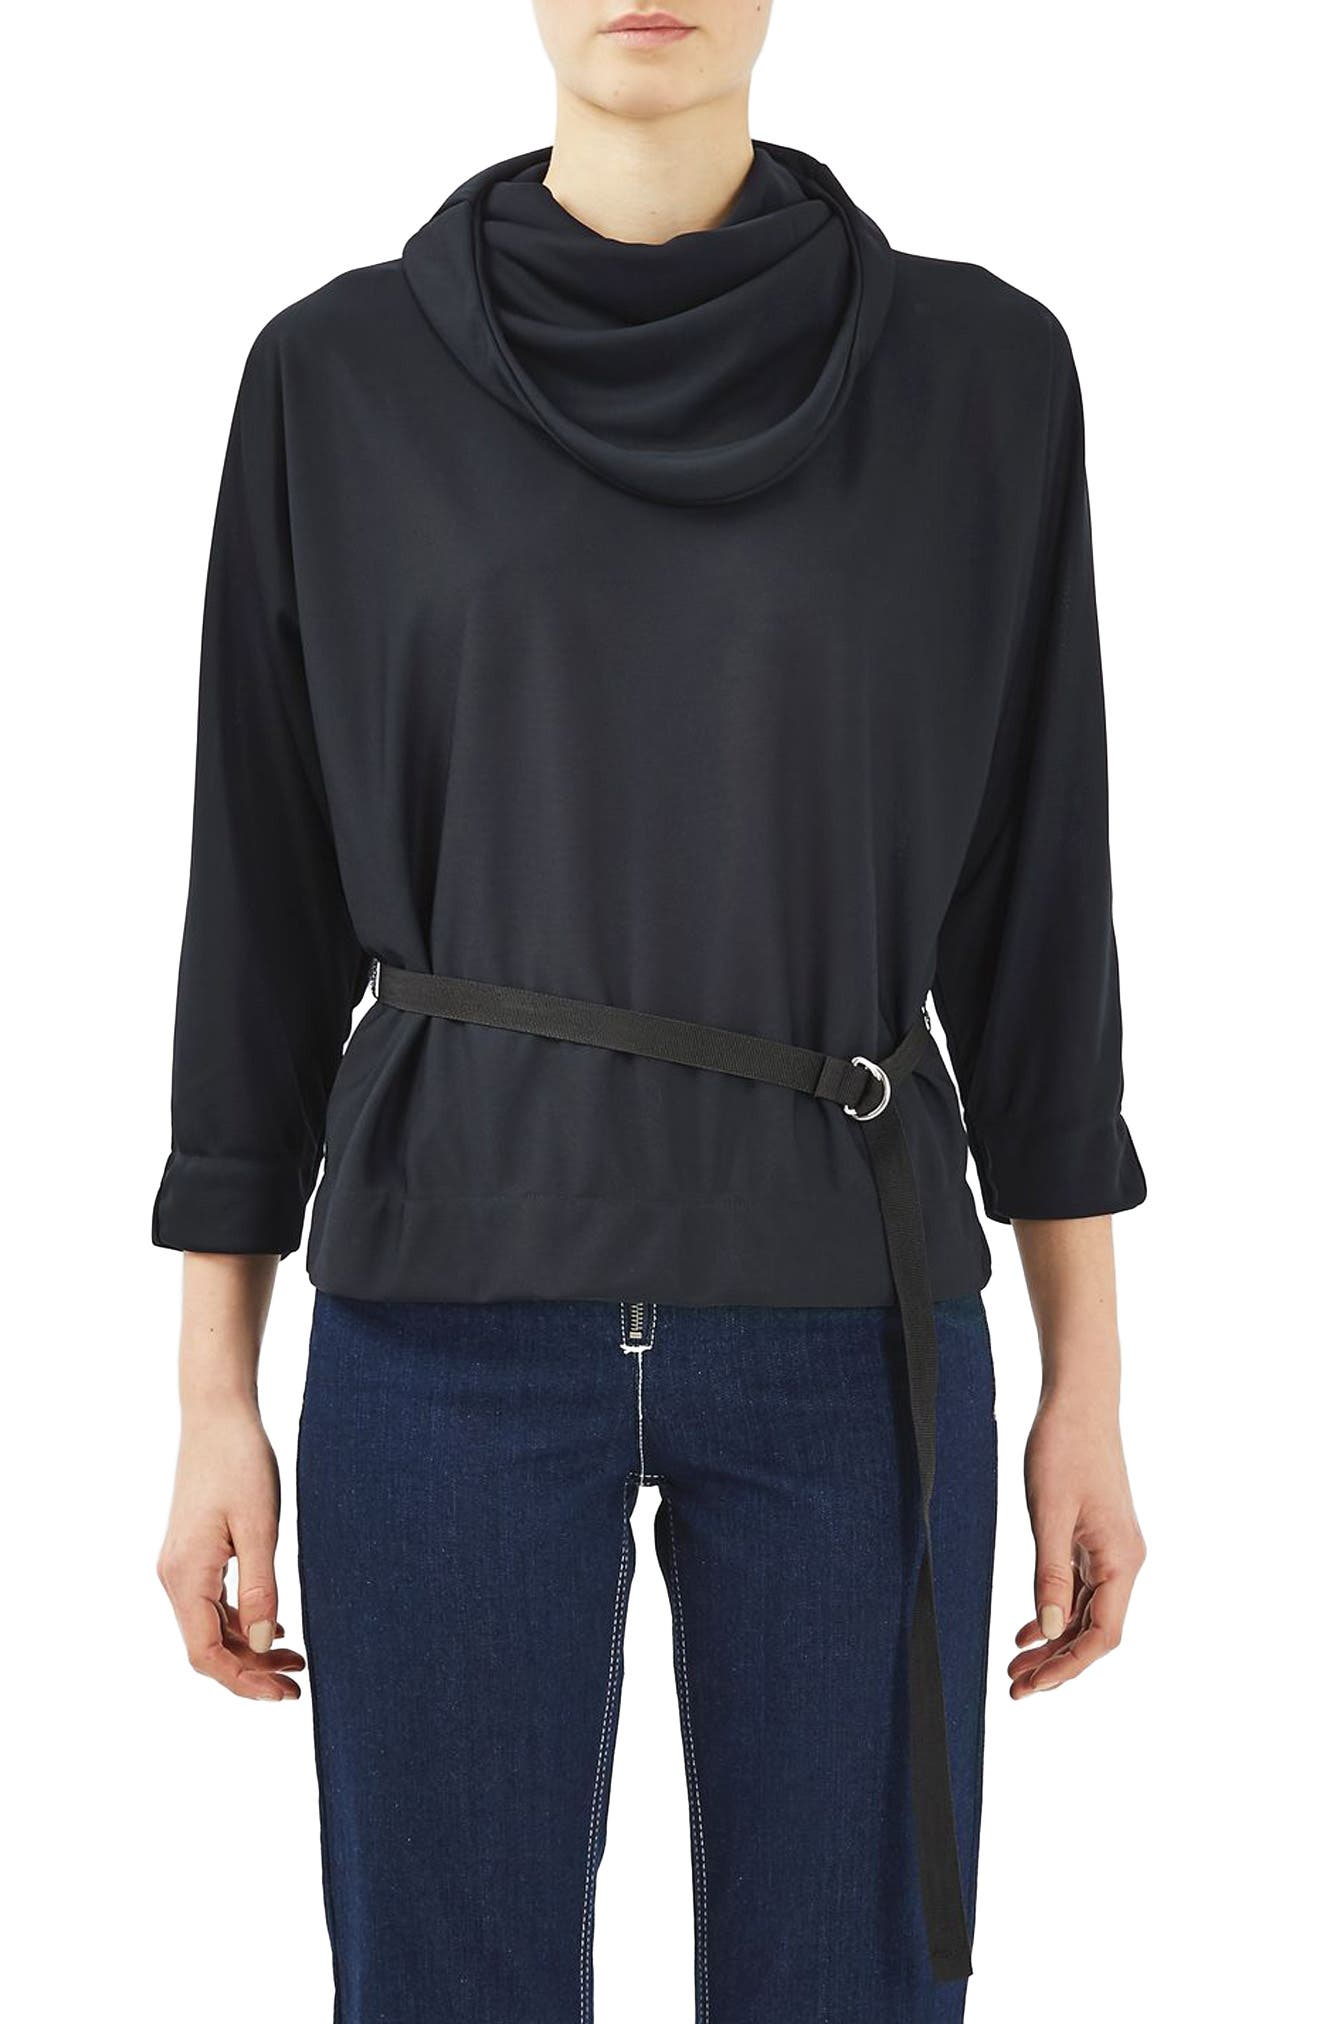 TOPSHOP BOUTIQUE Belted Top